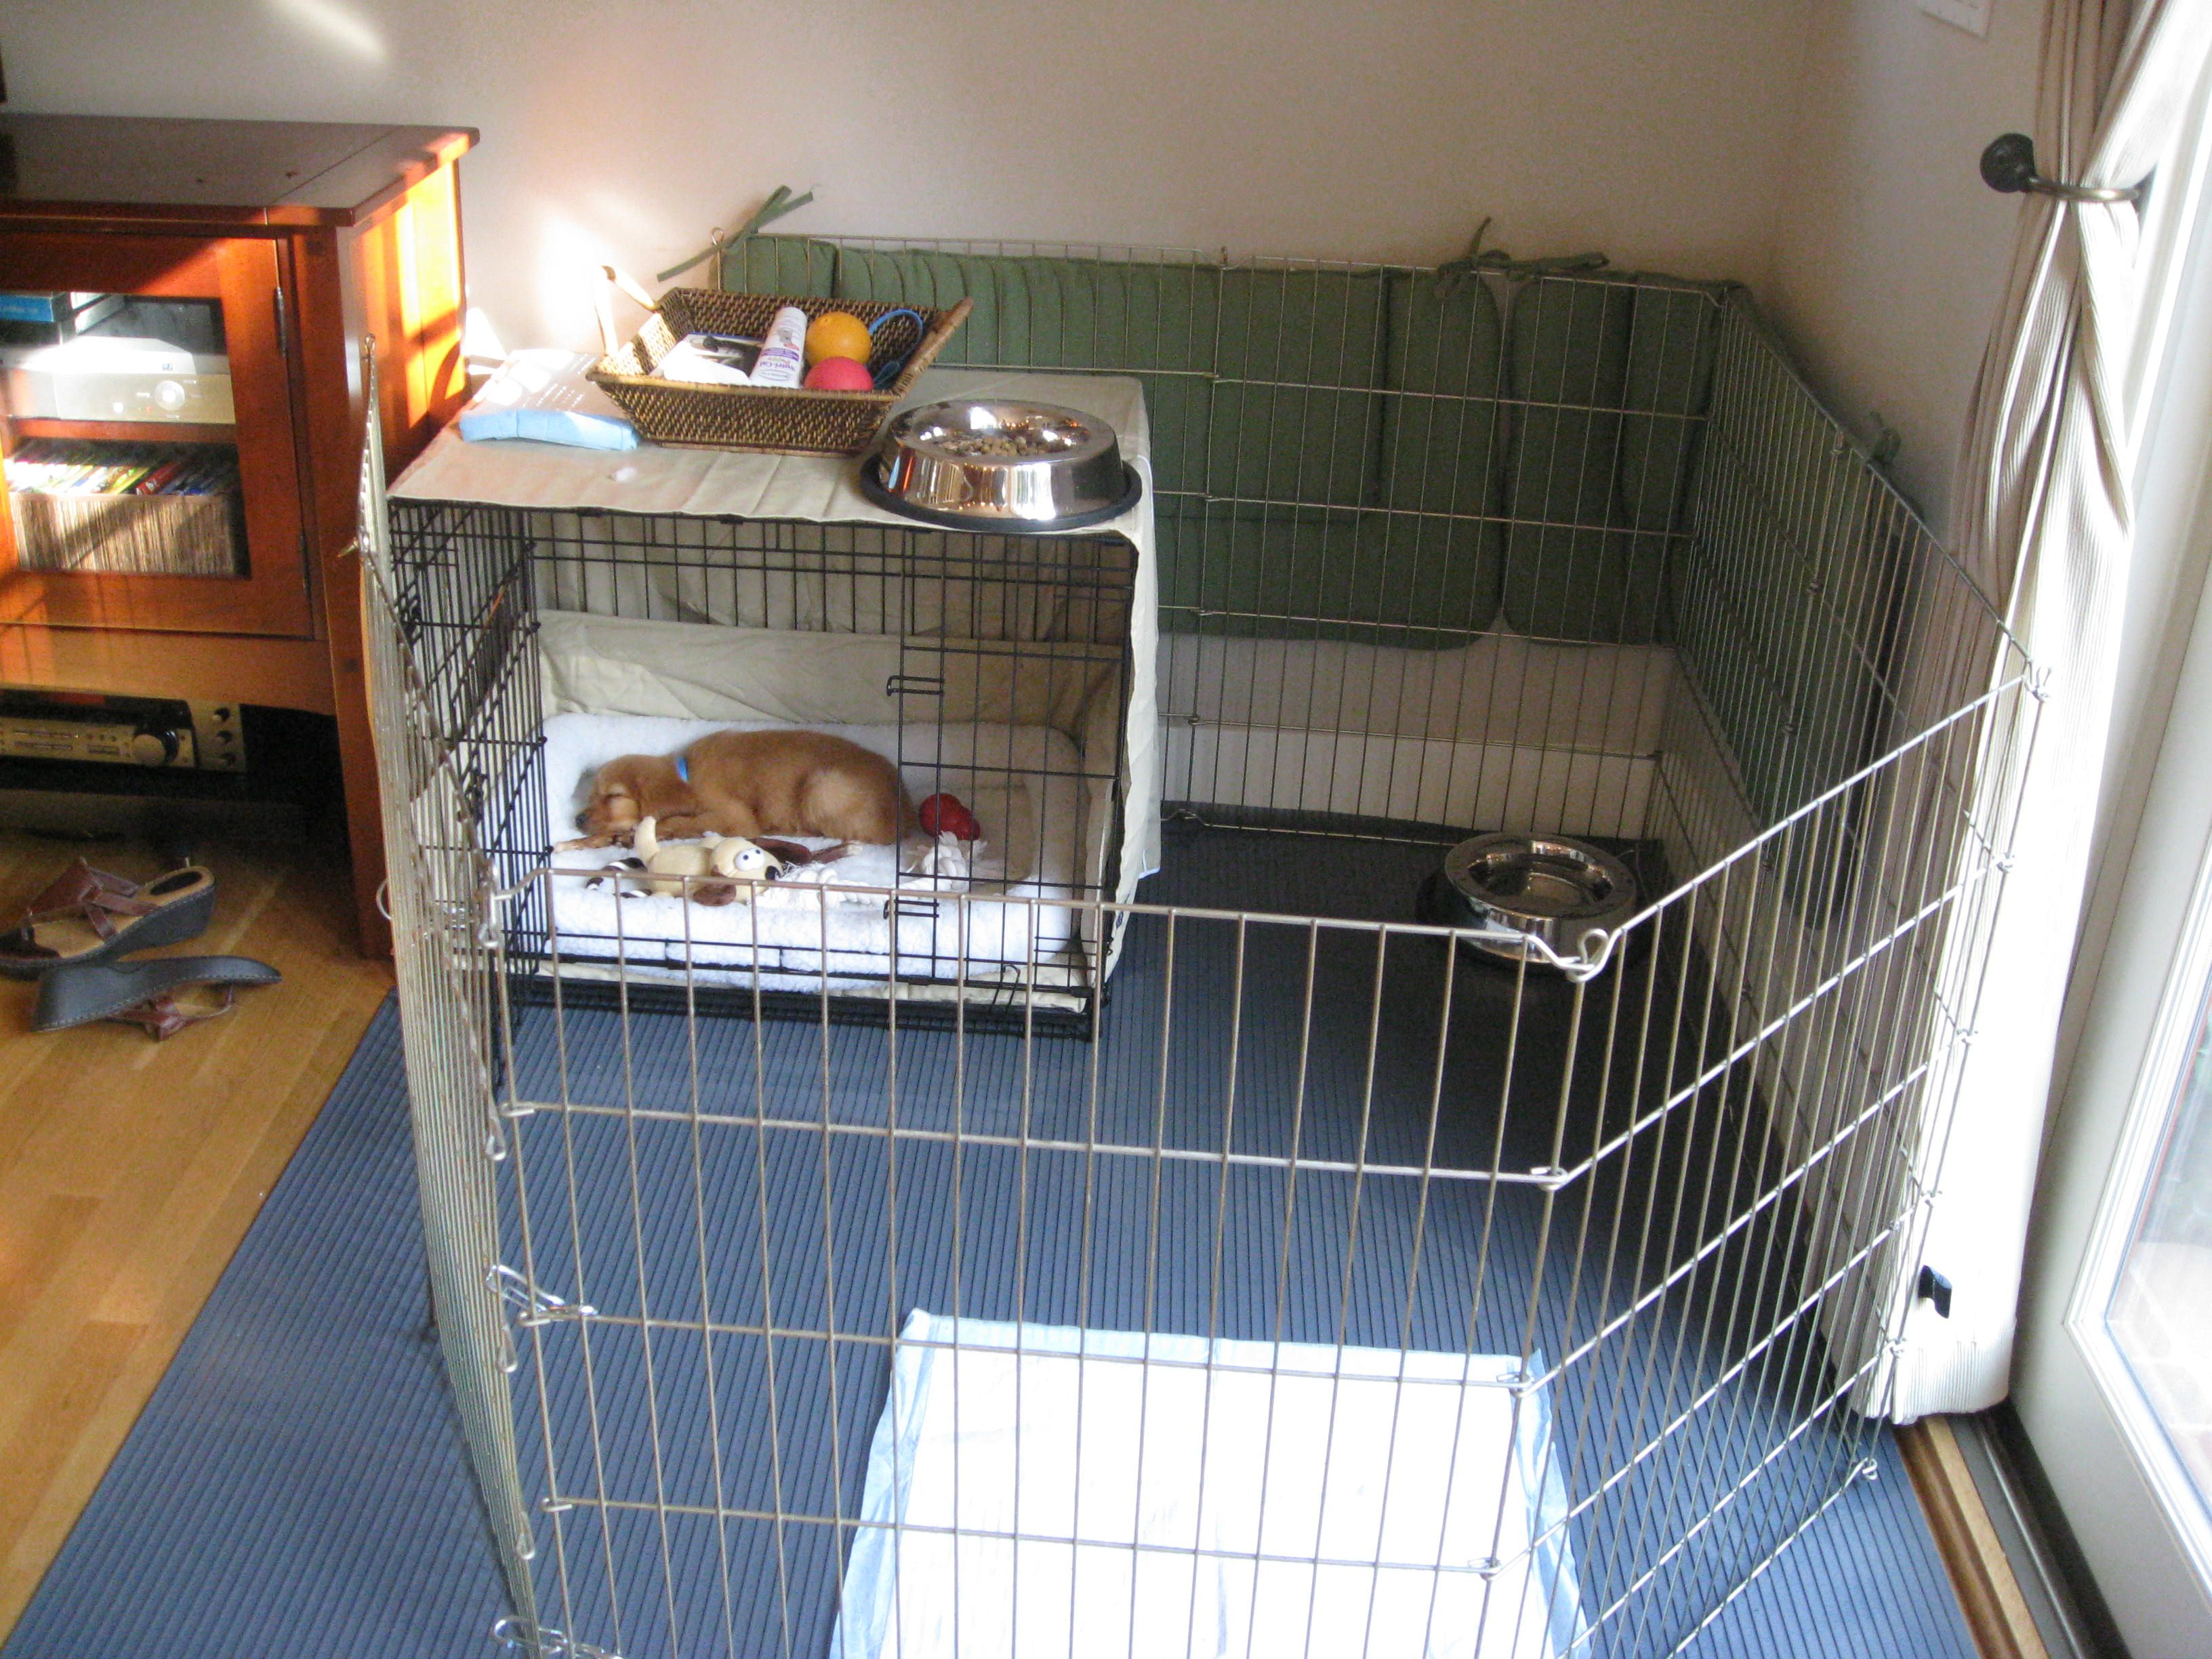 Kennel Liner To Protect Hard Wood Floors And Attach Puppy Fencing To Crate Puppy Playpen Puppy Crate Baby Puppies